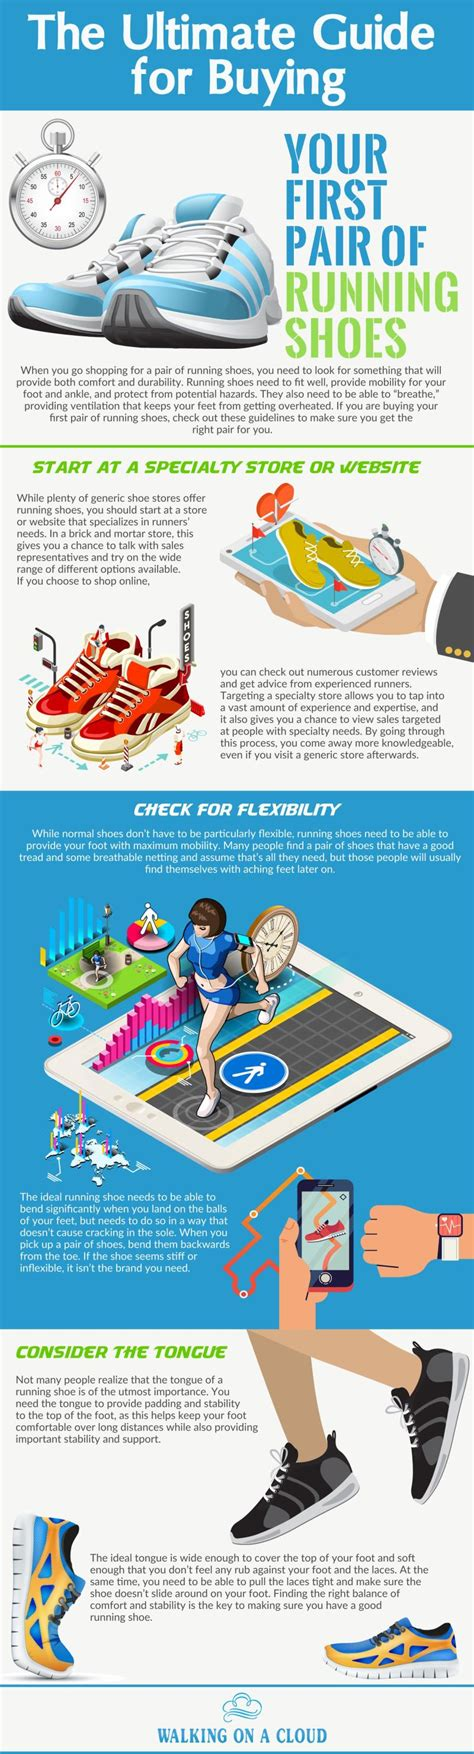 buying running shoes guide the ultimate guide for buying your pair of running